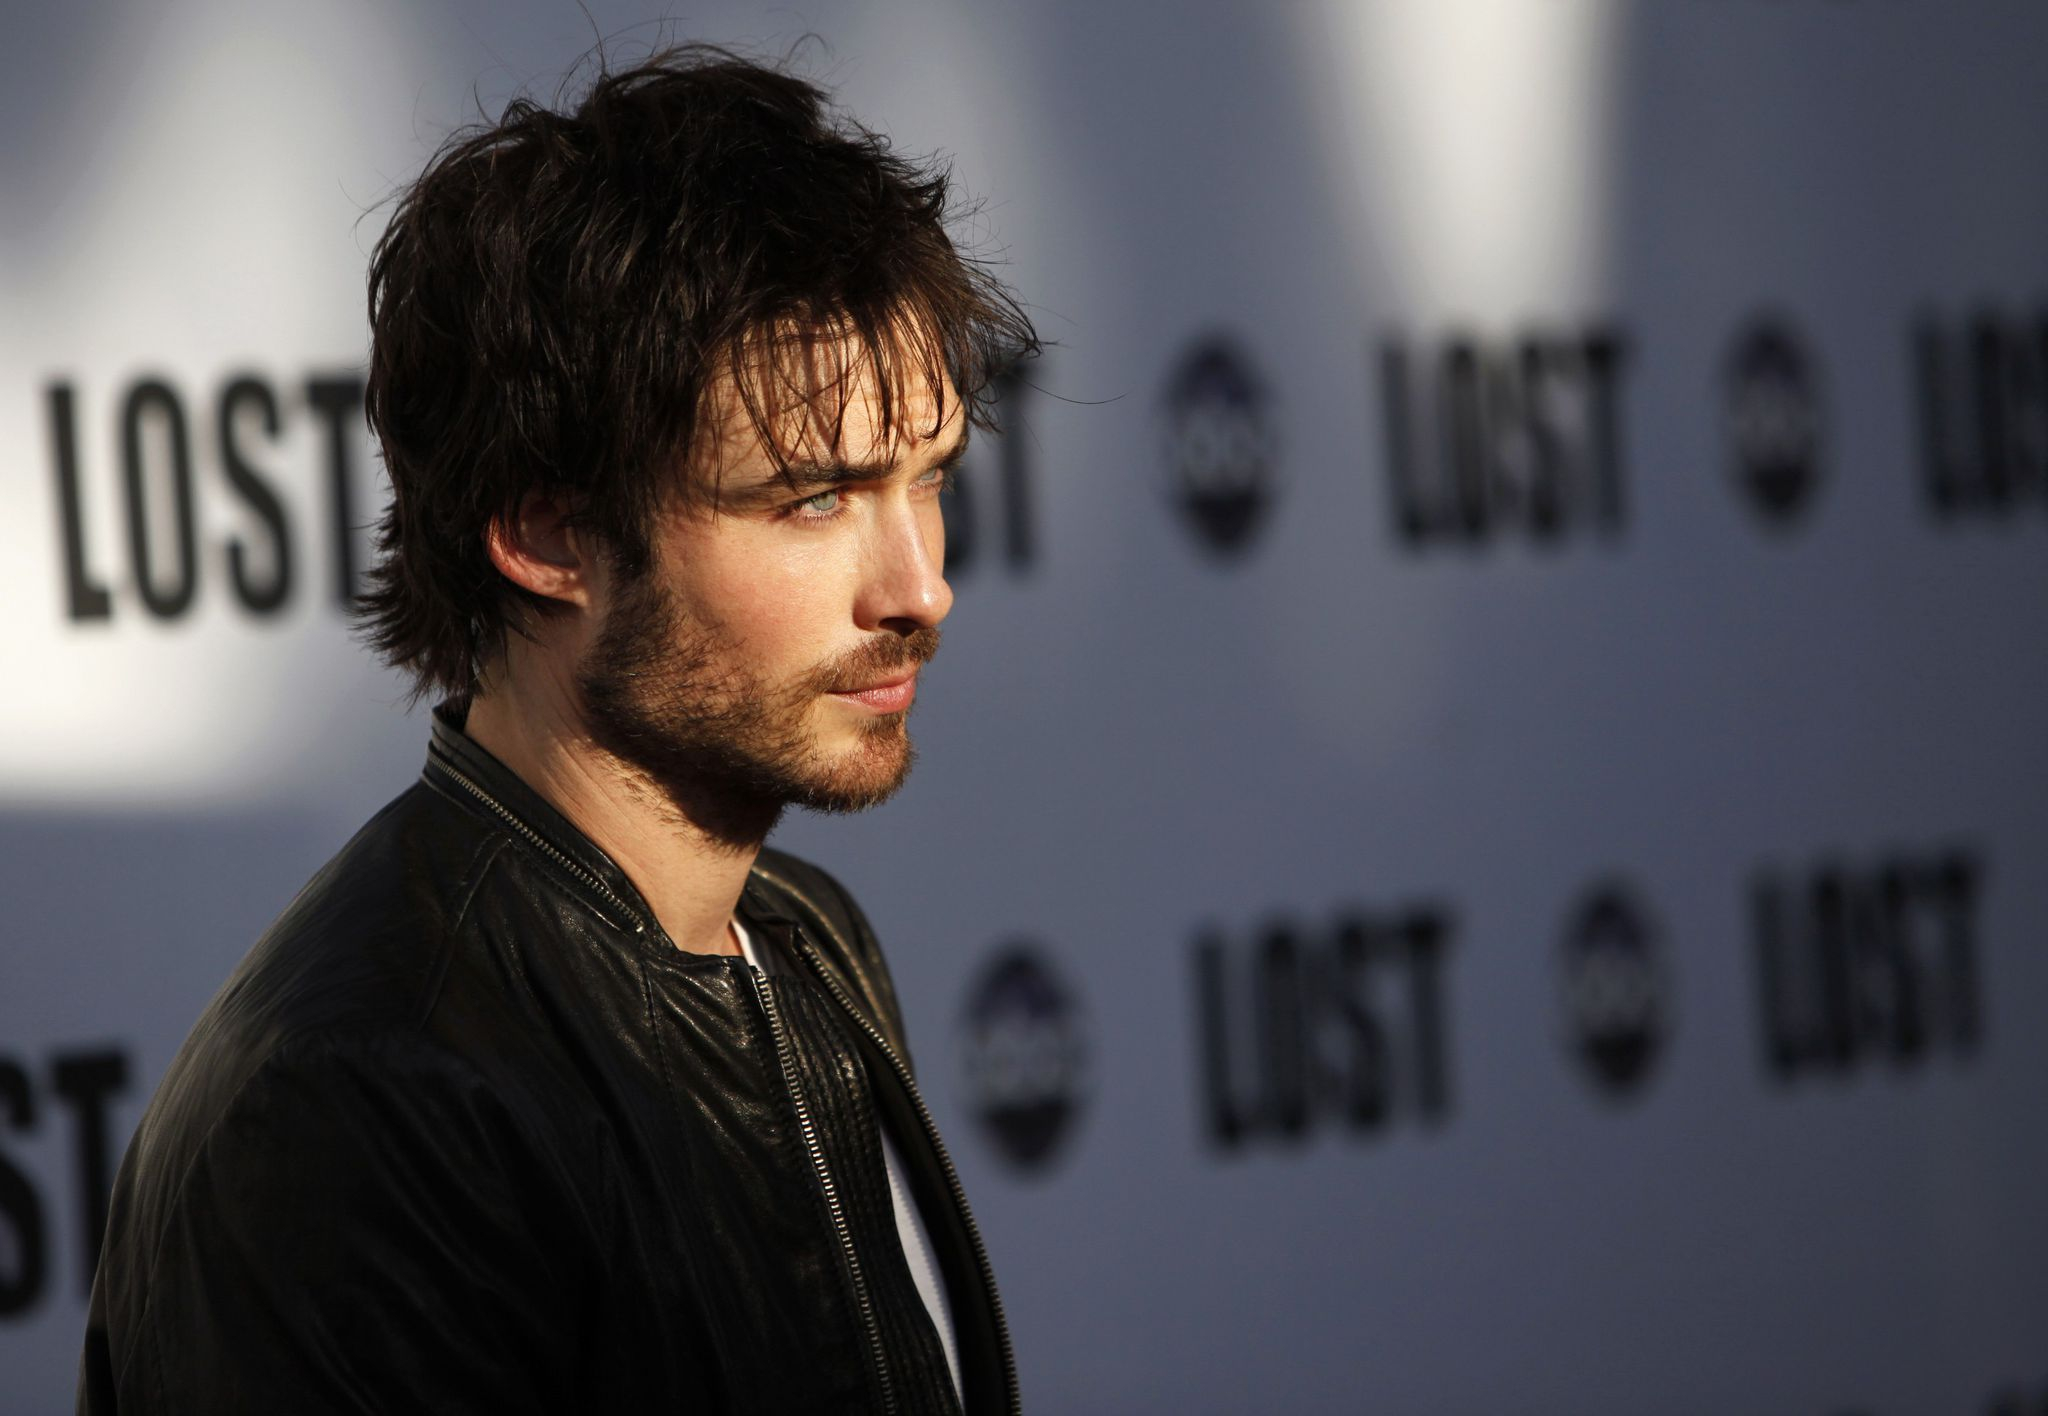 Ian Somerhalder ABC S Lost Live The Final Celebration